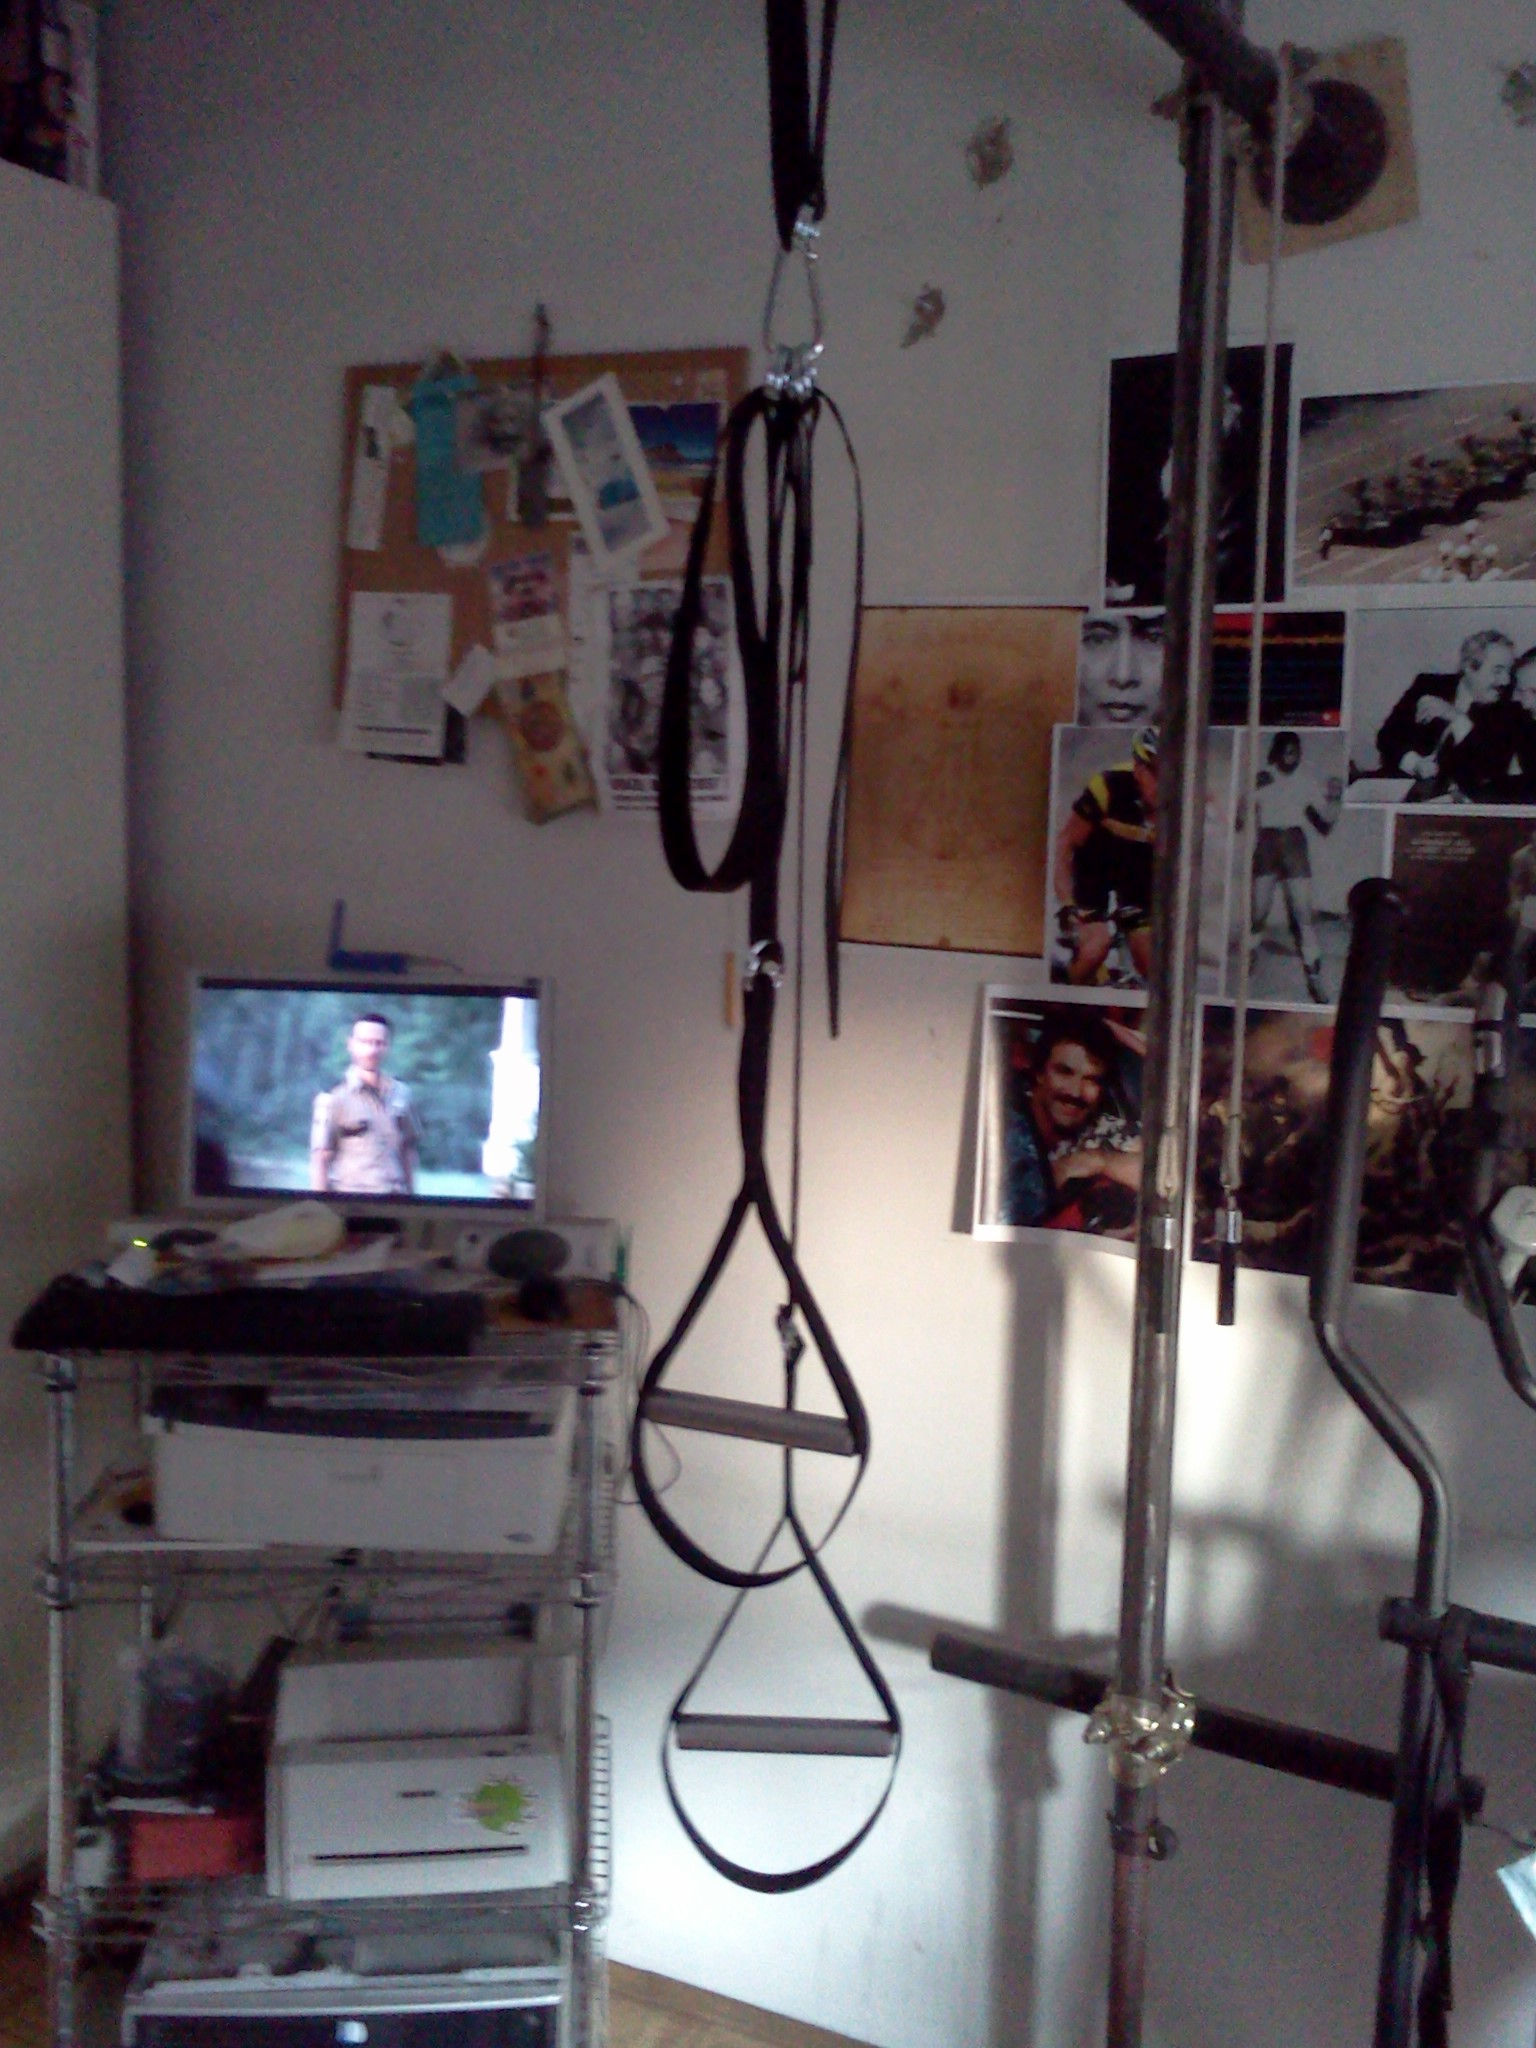 Home Made TRX: bodyweight suspended training system